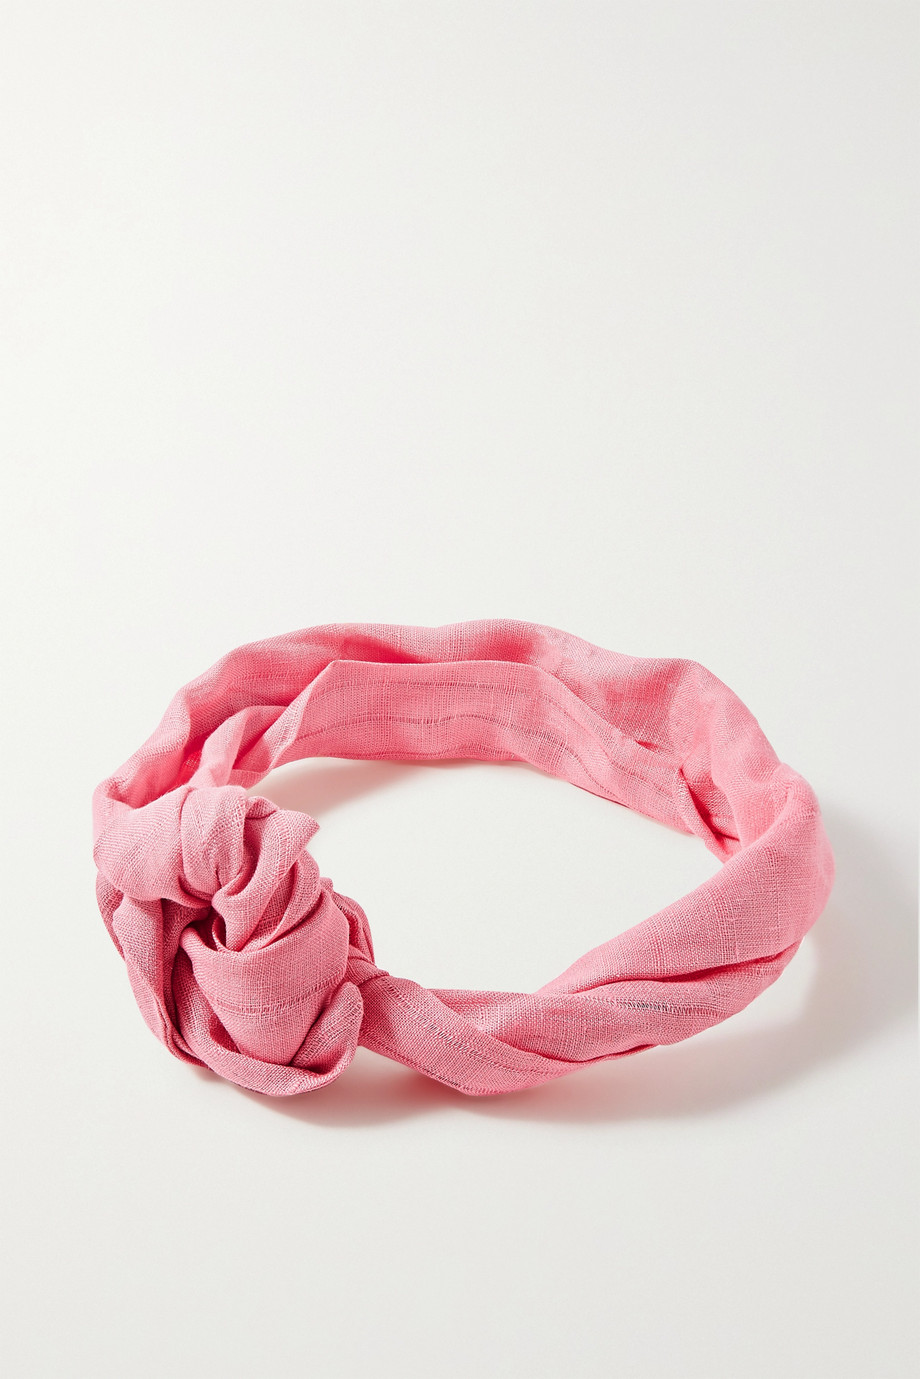 Cult Gaia Turband knotted linen headband